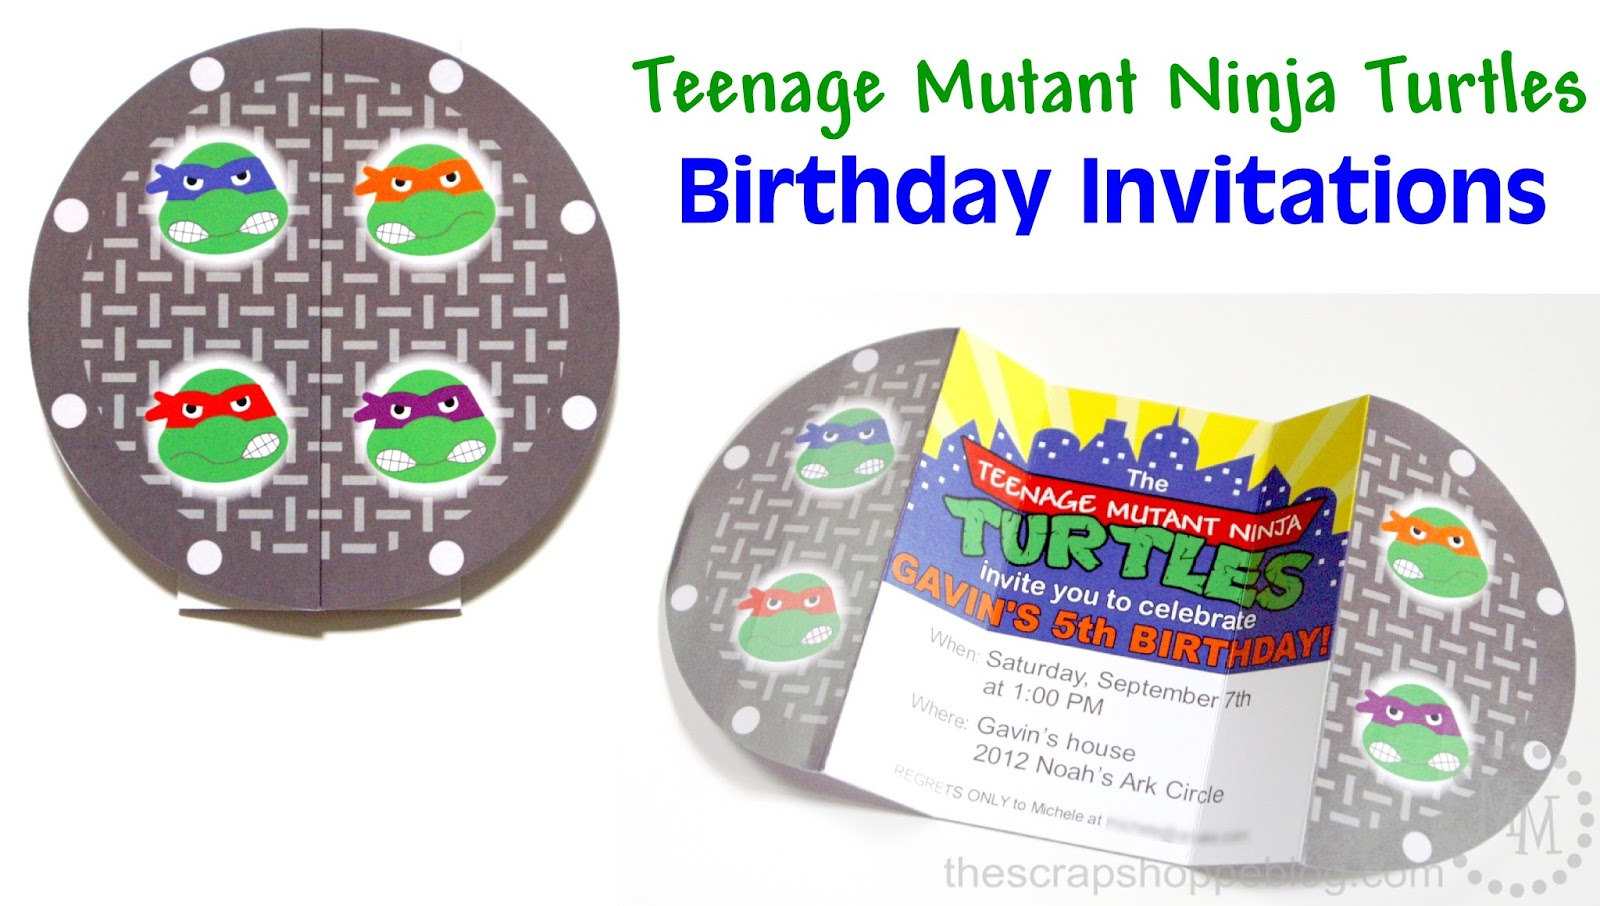 Teenage mutant ninja turtles tmnt birthday invitations the scrap teenage mutant ninja turtles tmnt birthday invitations filmwisefo